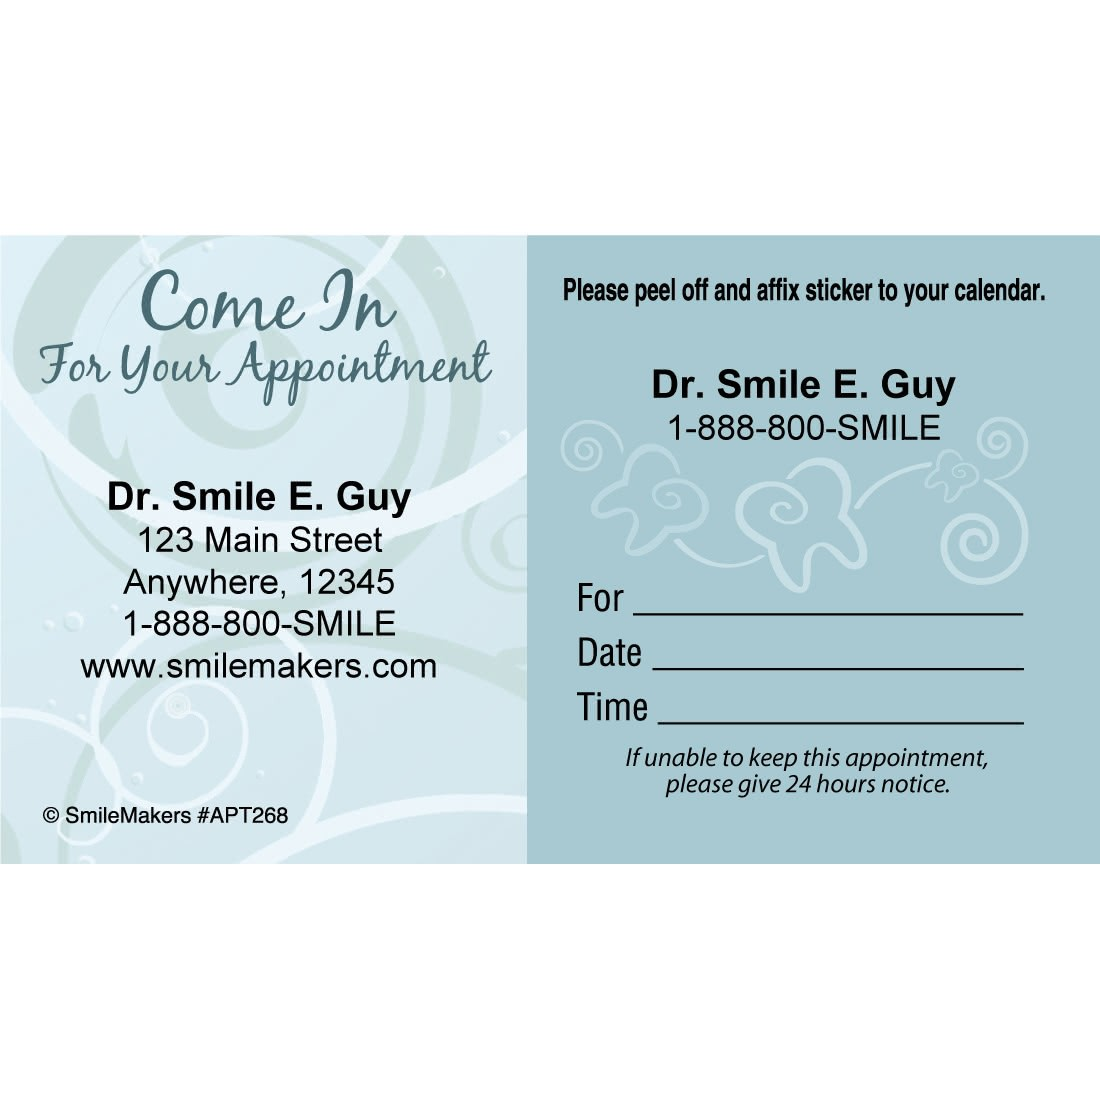 Custom Come In Swirls Sticker Appointment Cards [image]